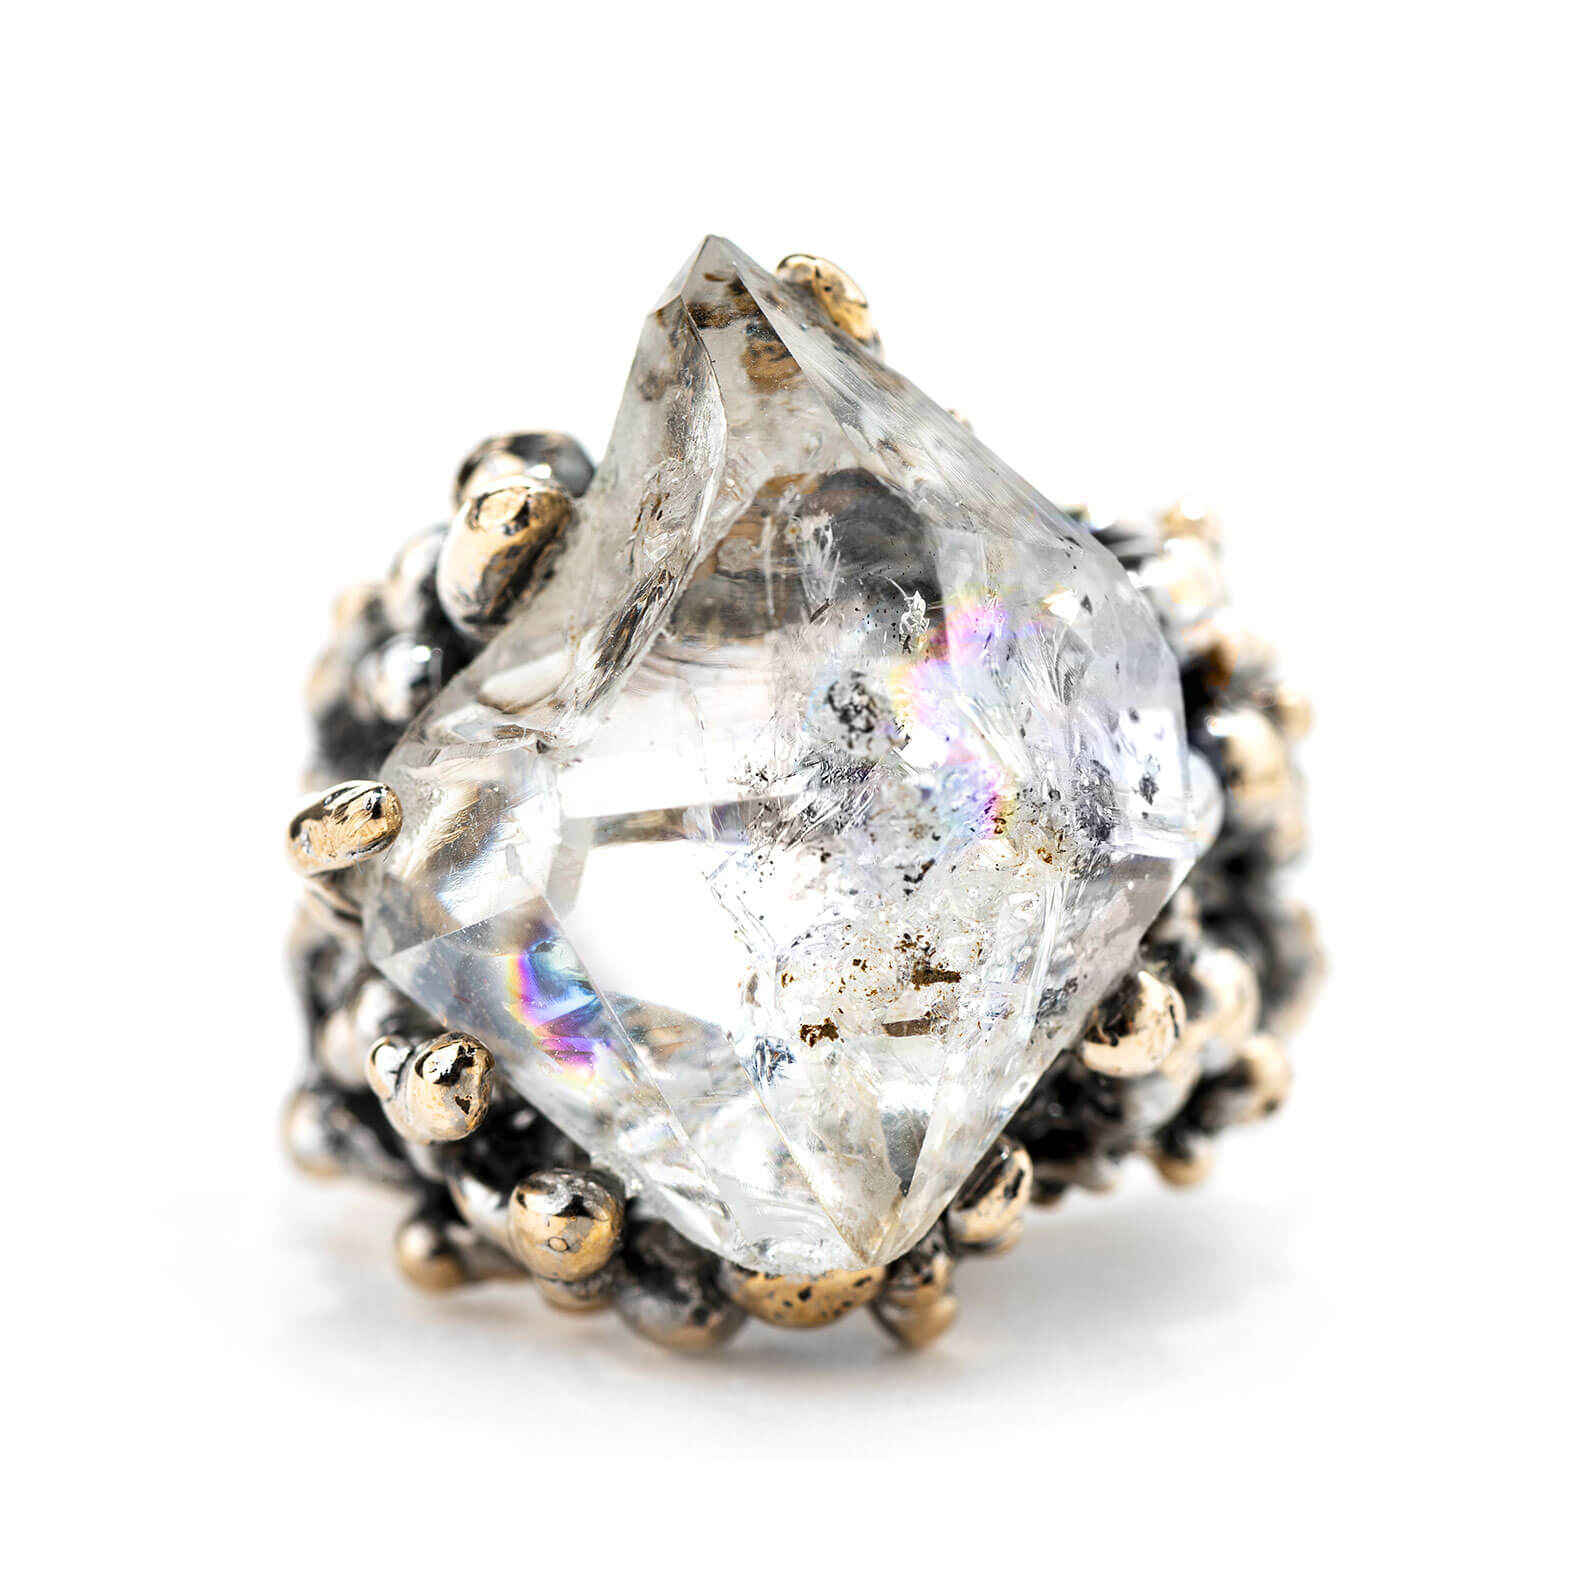 Herkimer Diamond Ring Crystal Jewelry For Healing